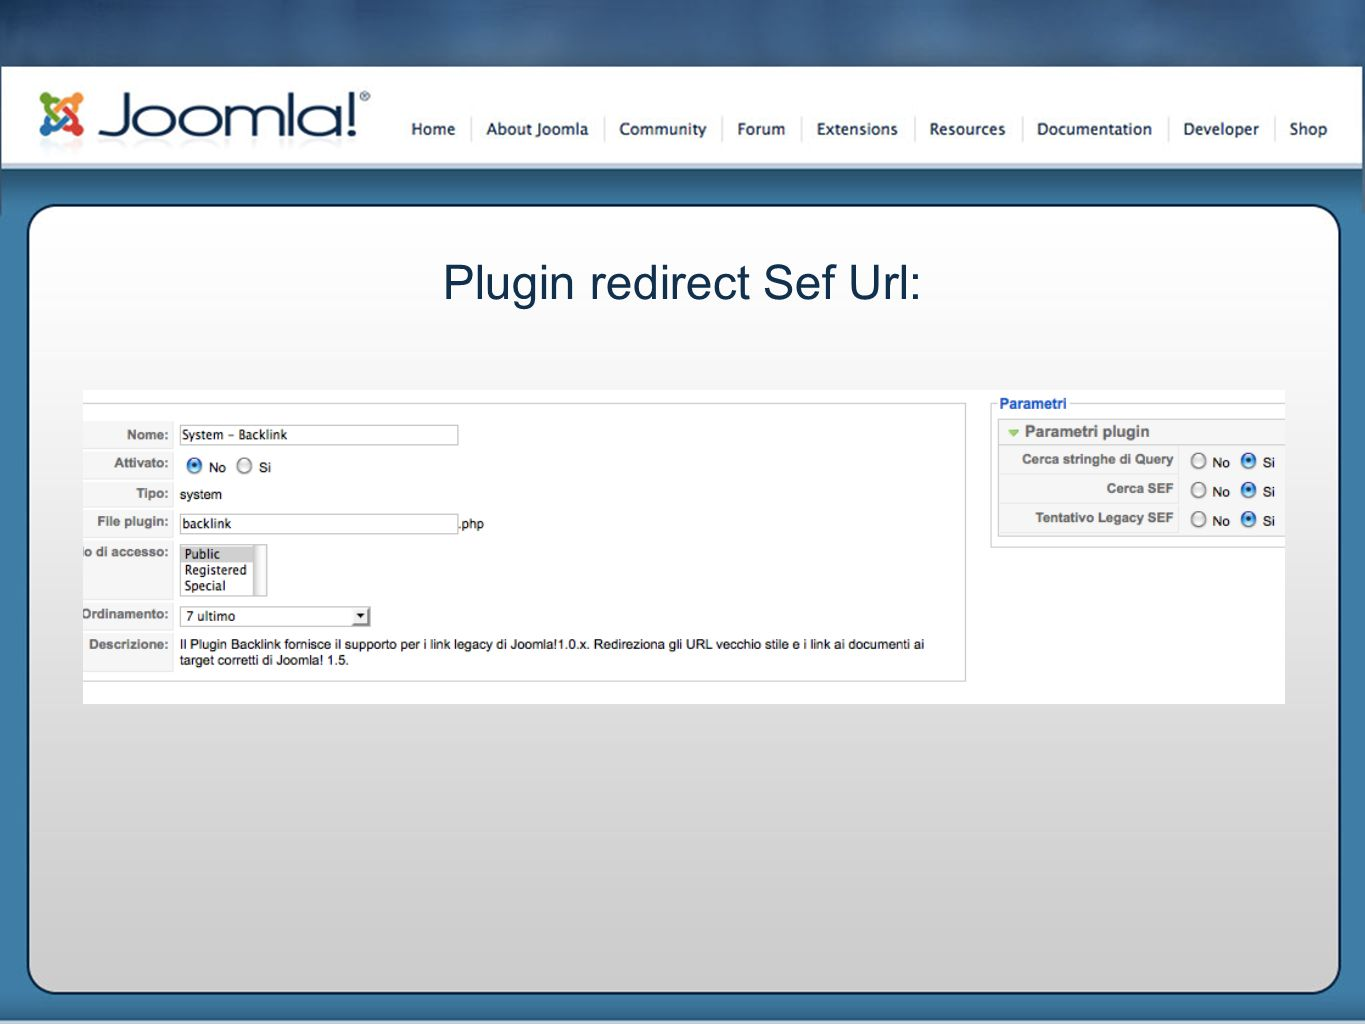 Plugin redirect Sef Url: